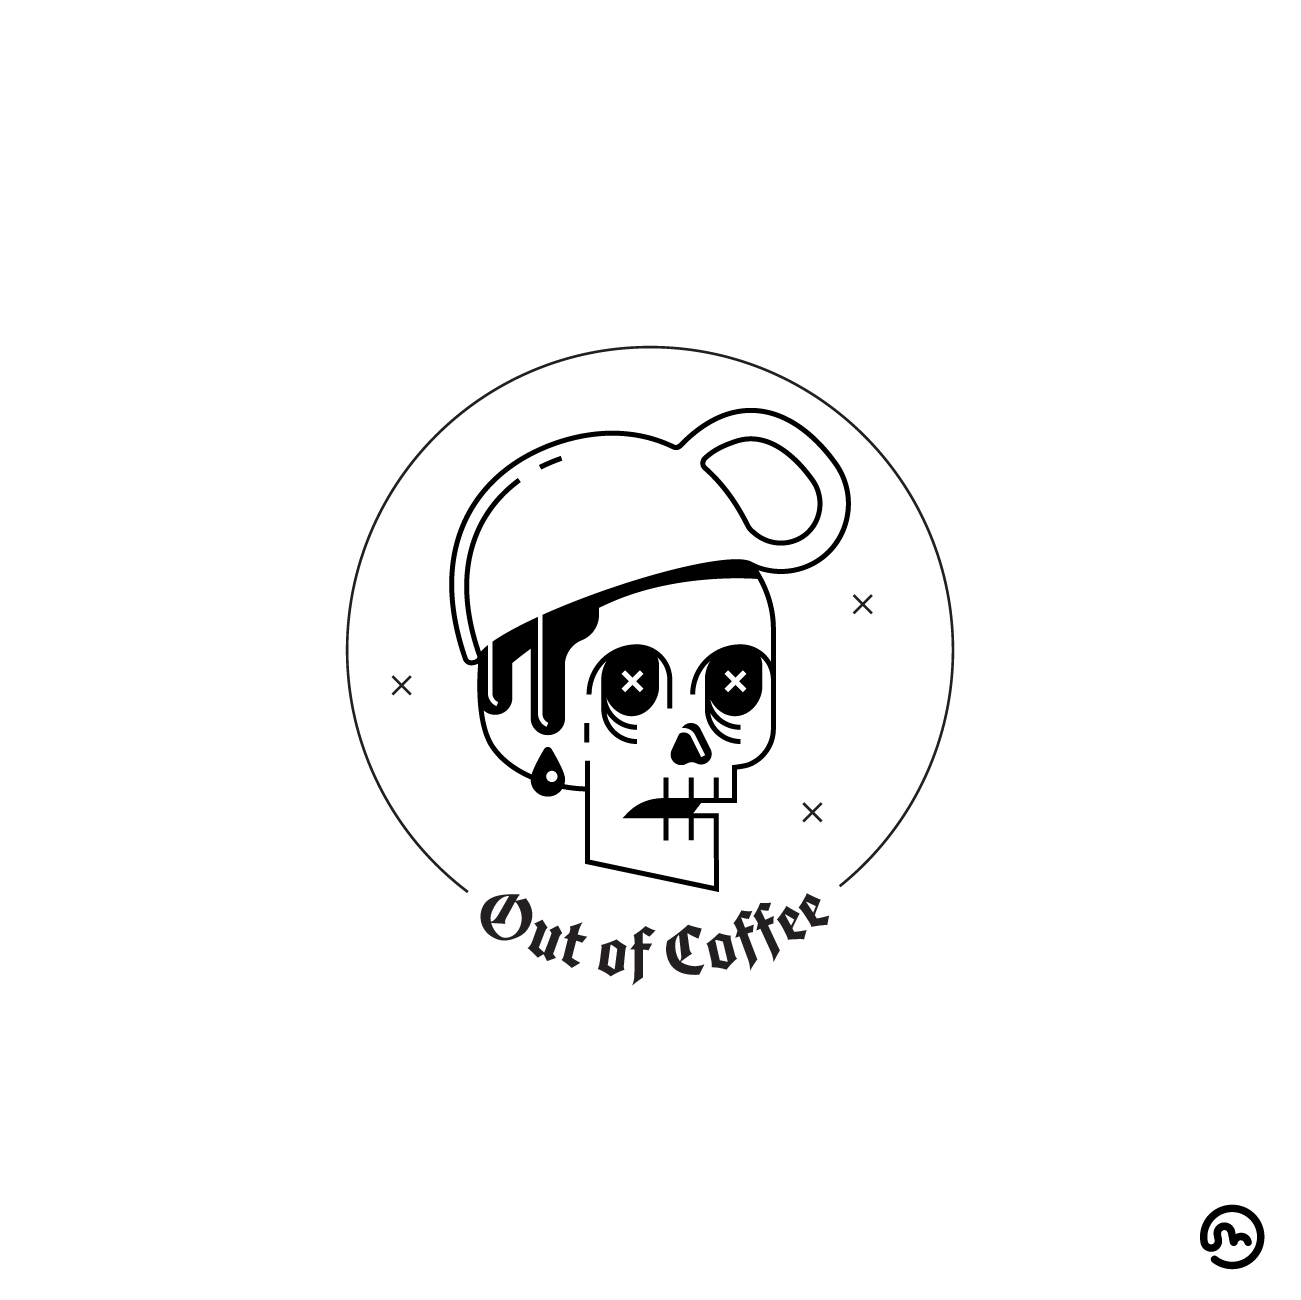 Os ... Morningmare - coffee, outofcoffee - jessienewhouse | ello